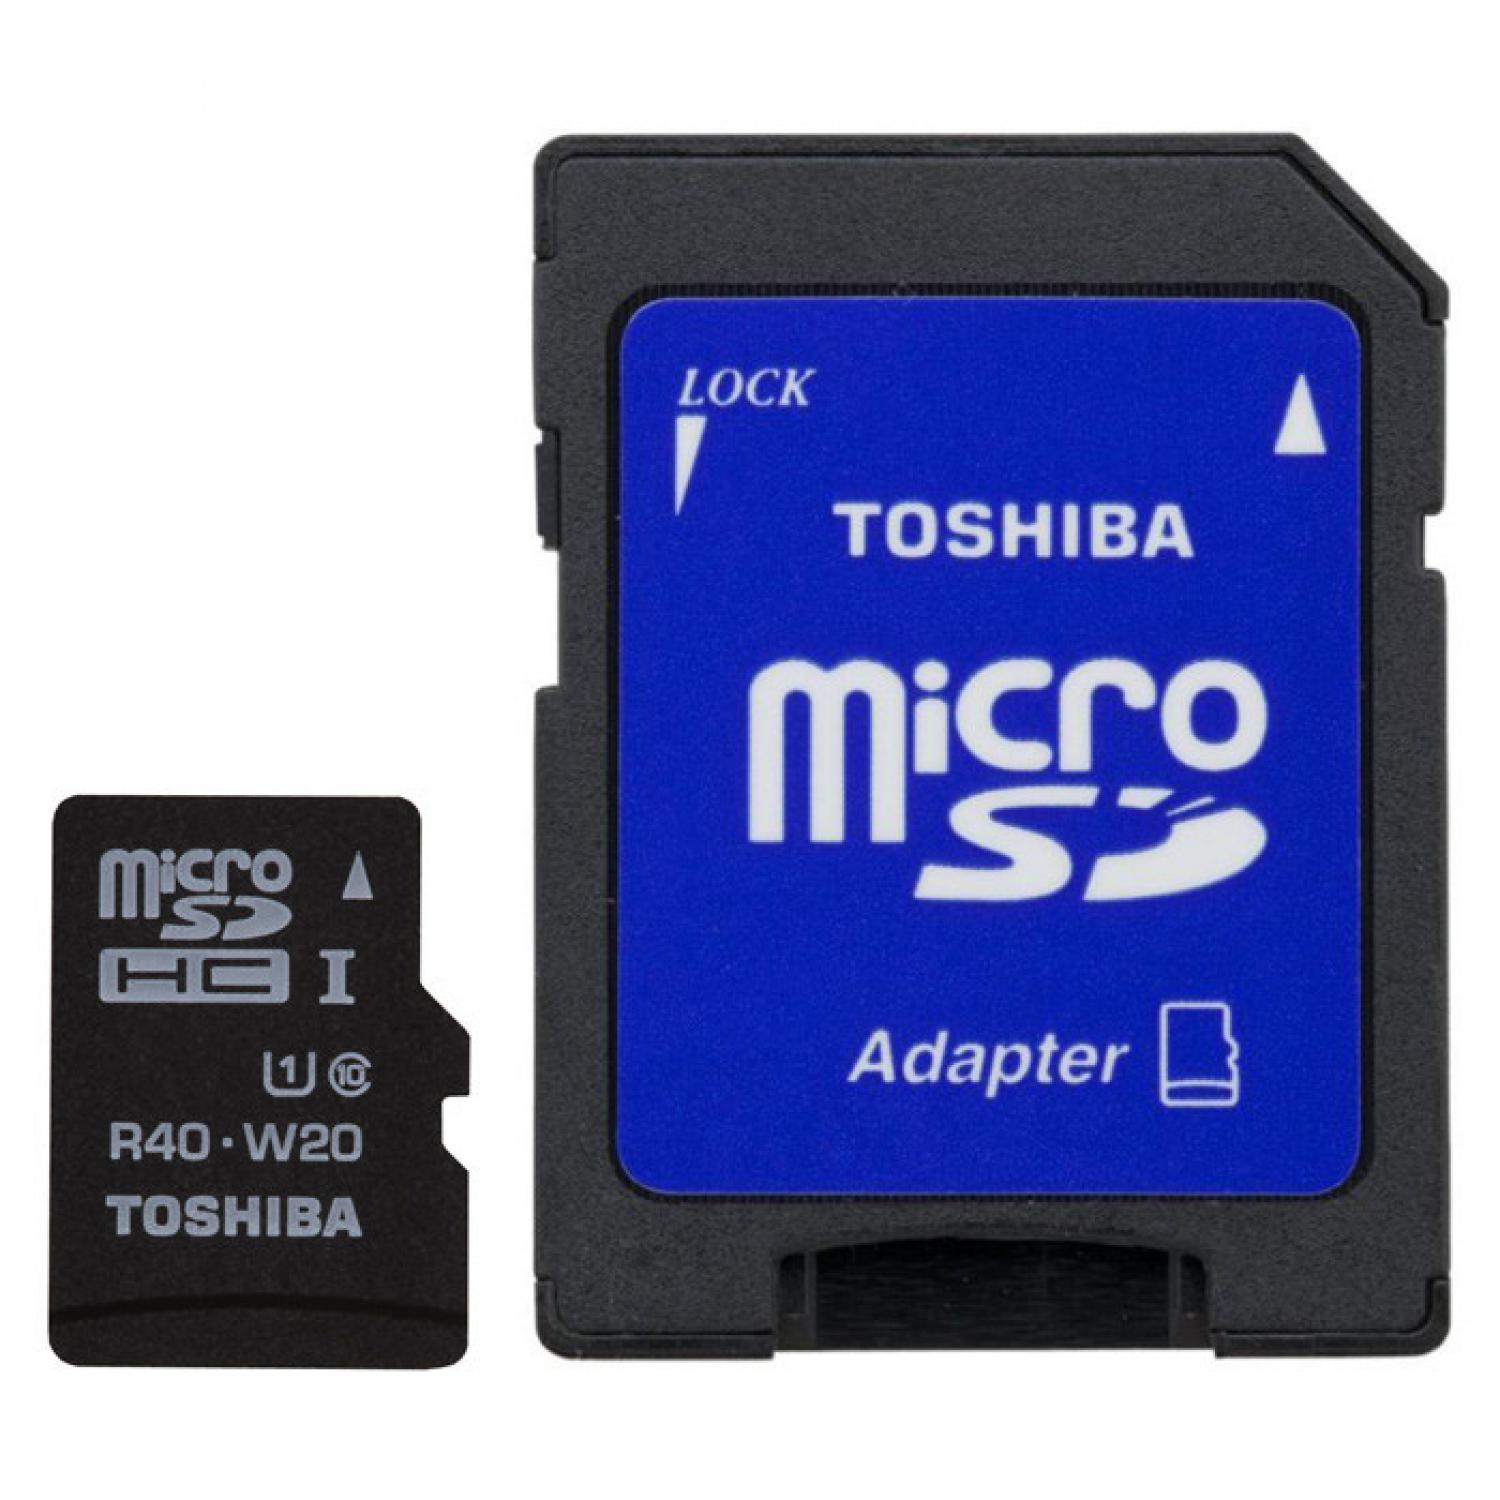 Toshiba MicroSDHC UHS-I Class 10 30MB/s 32GB withSD Card Adapter